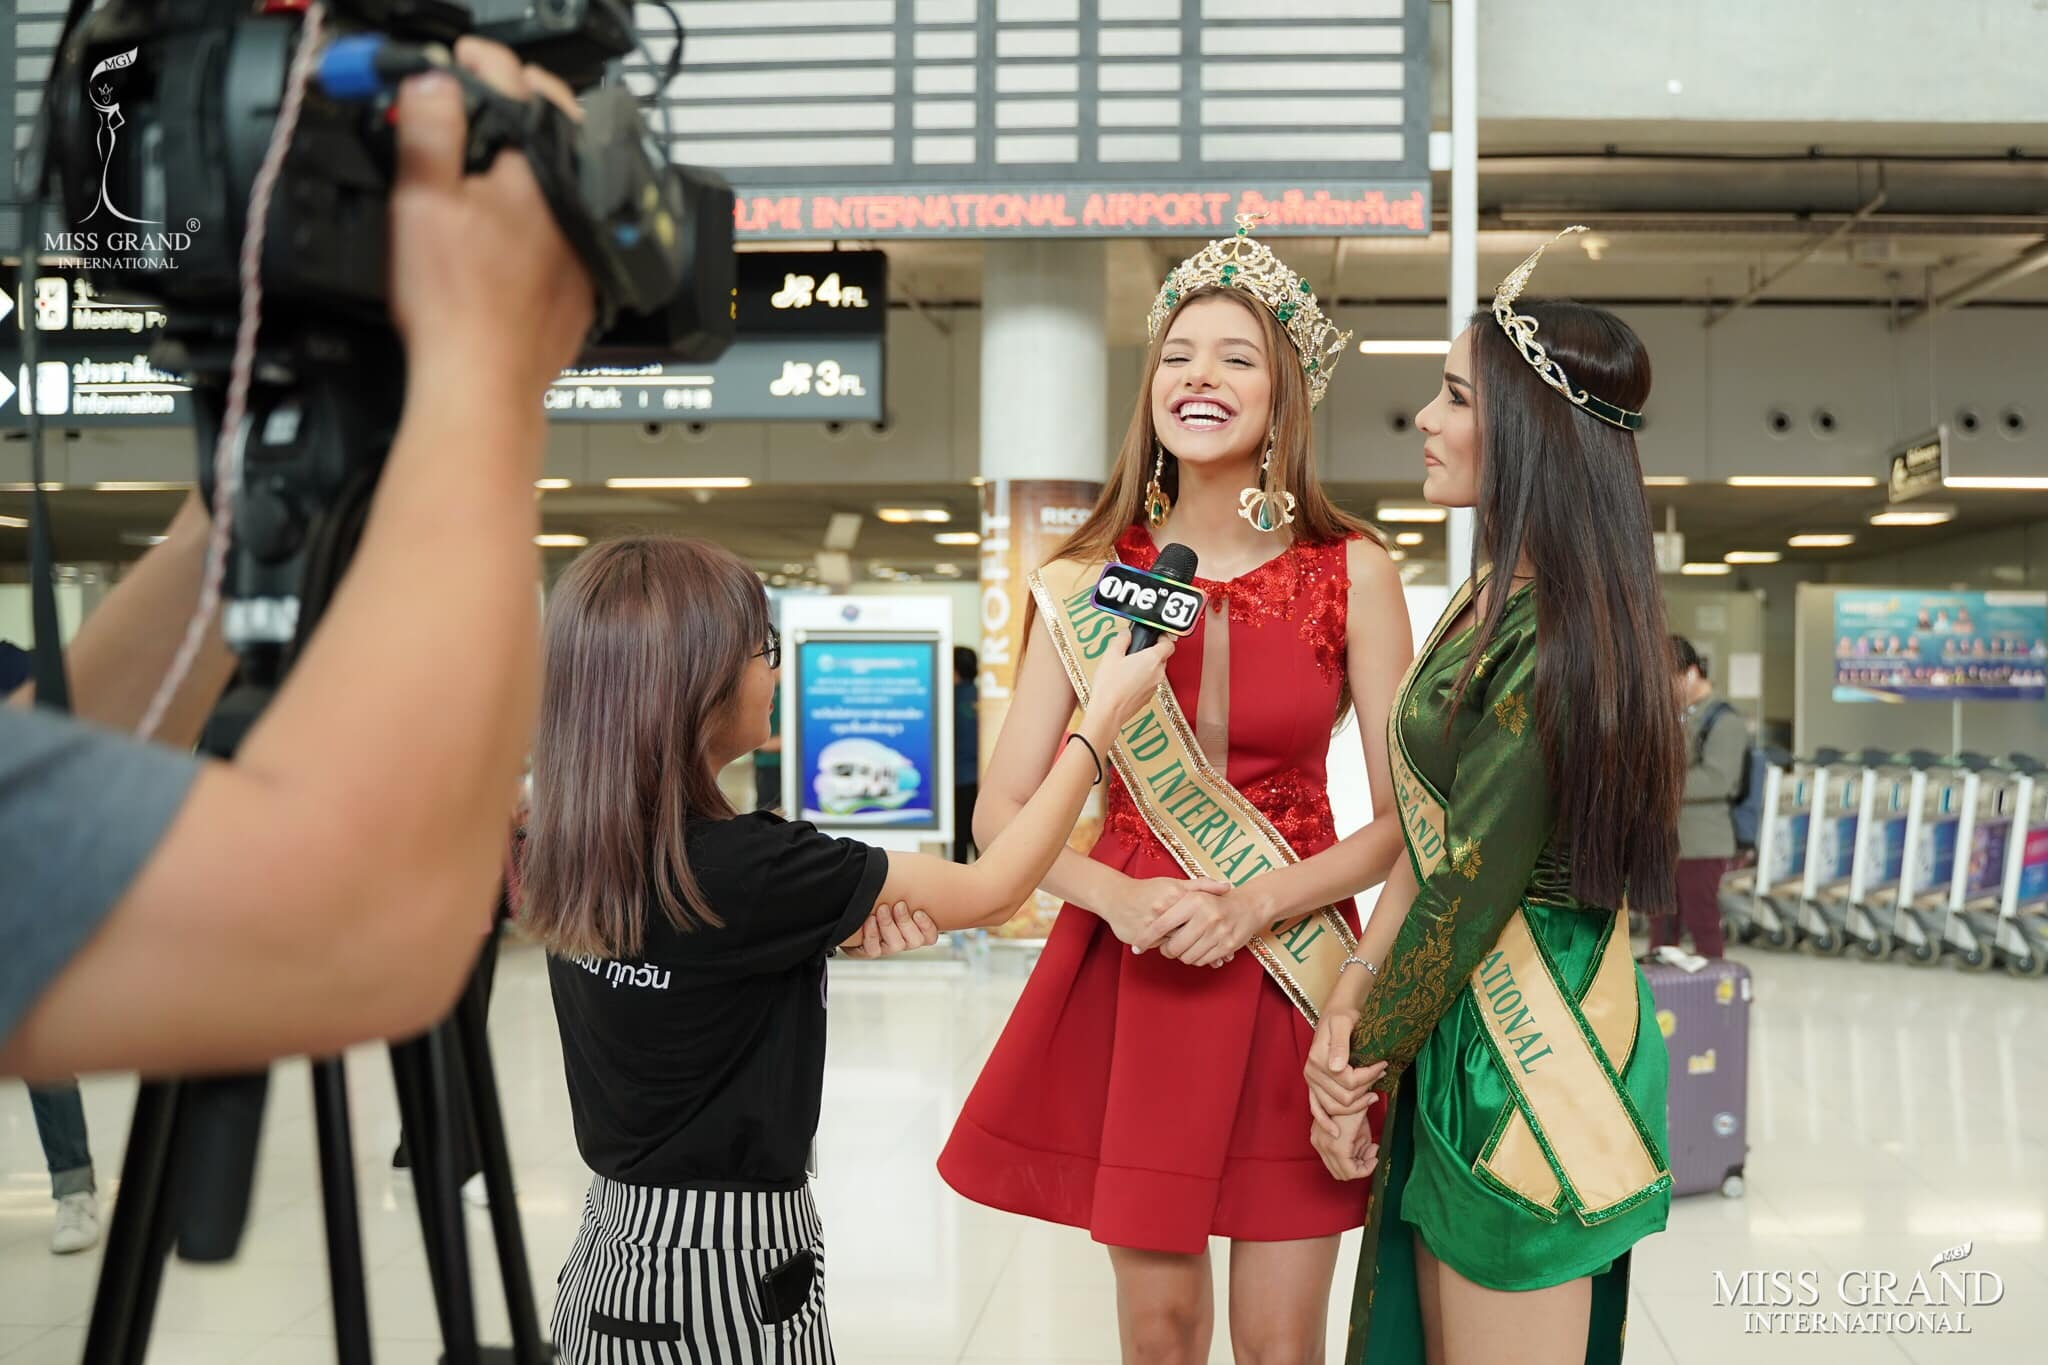 lourdes valentina figuera, miss grand international 2019. - Página 13 Pr4g510